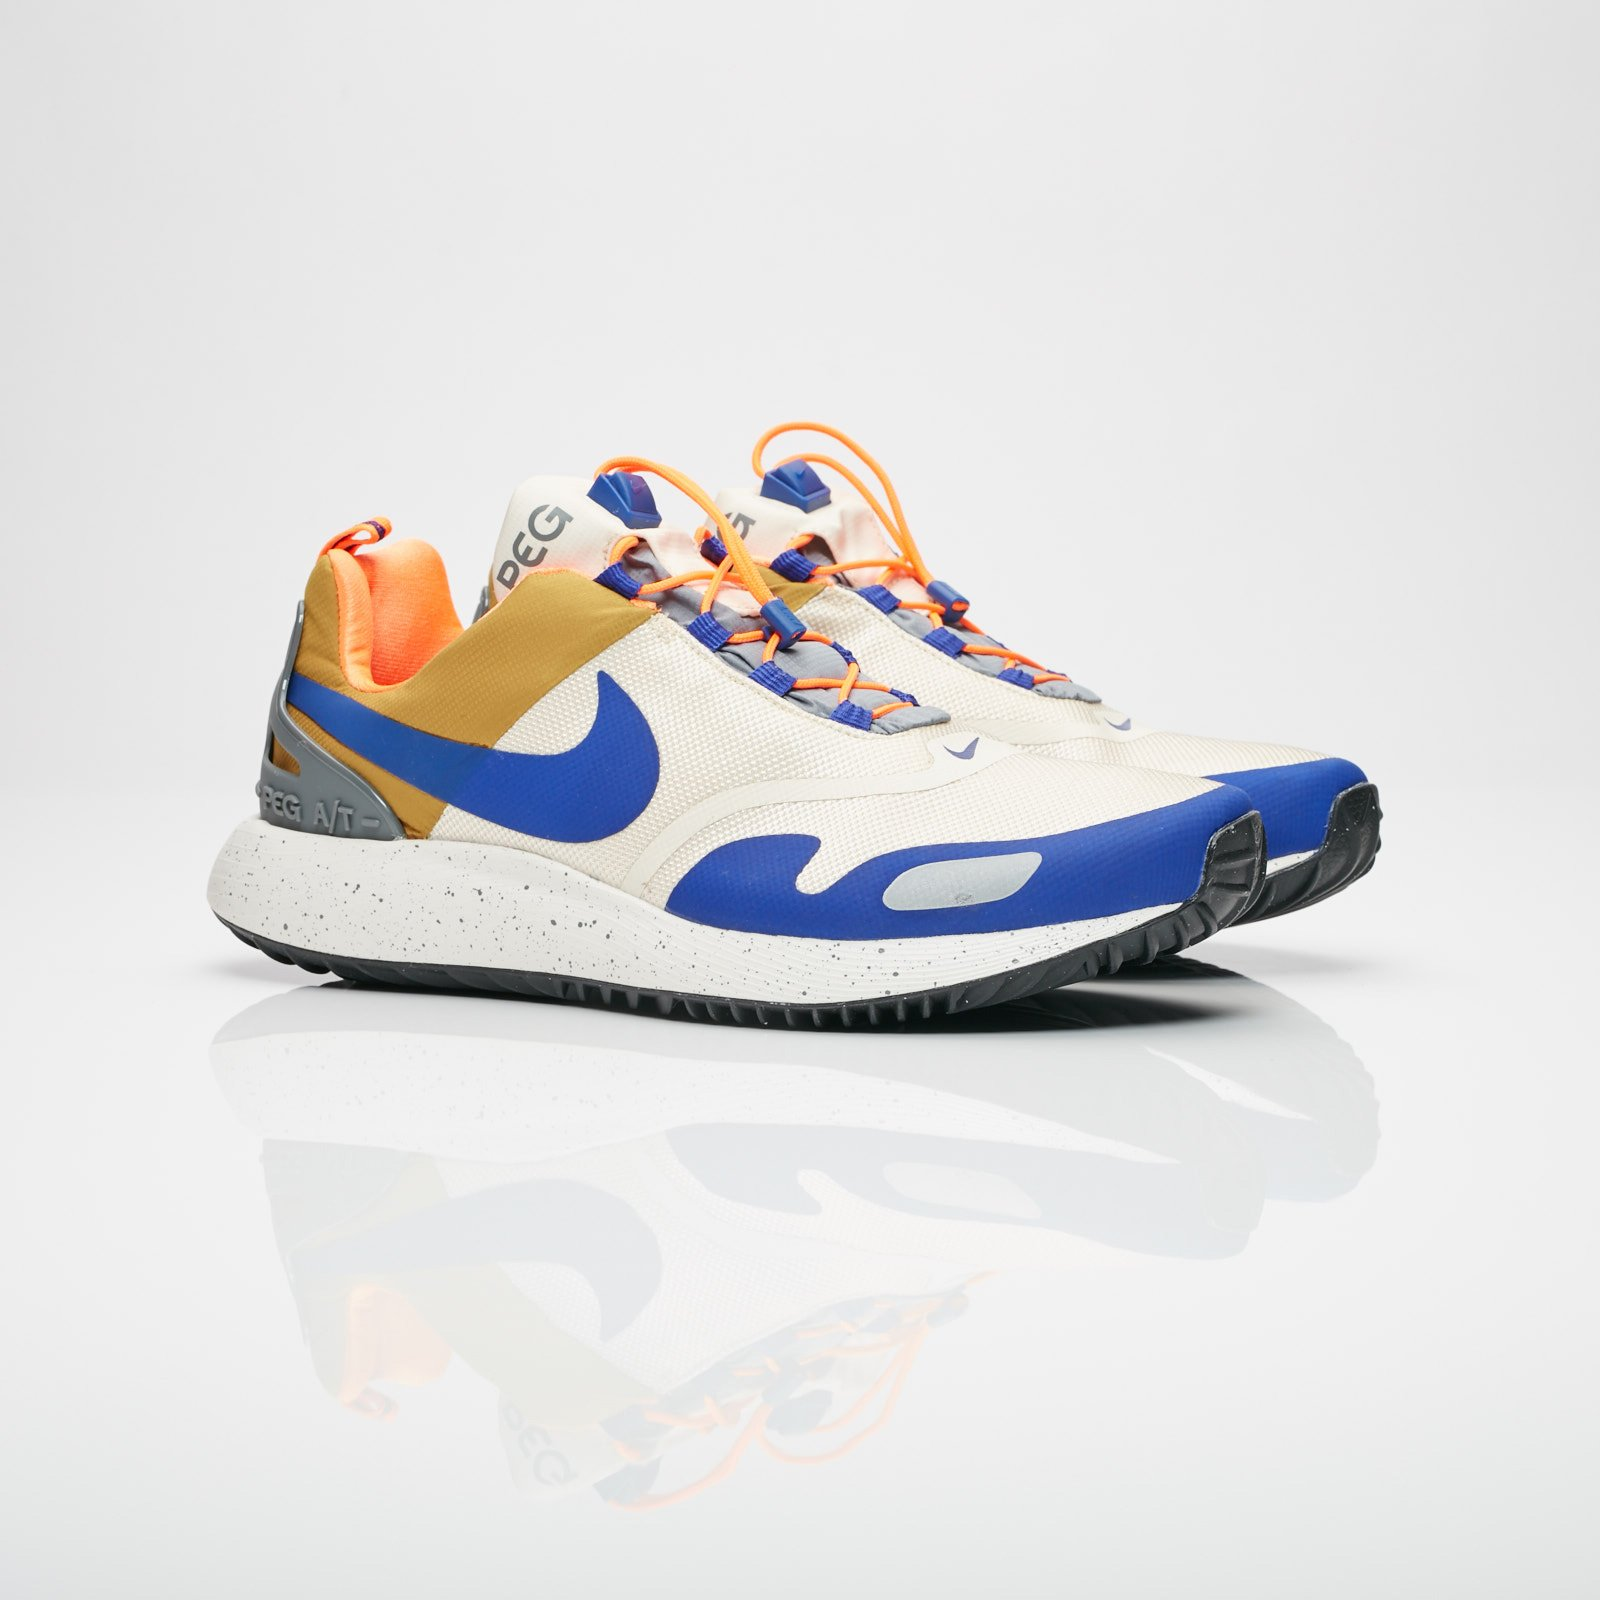 c1c440676375 Nike Air Pegasus A T Winter QS - Ao3296-200 - Sneakersnstuff ...